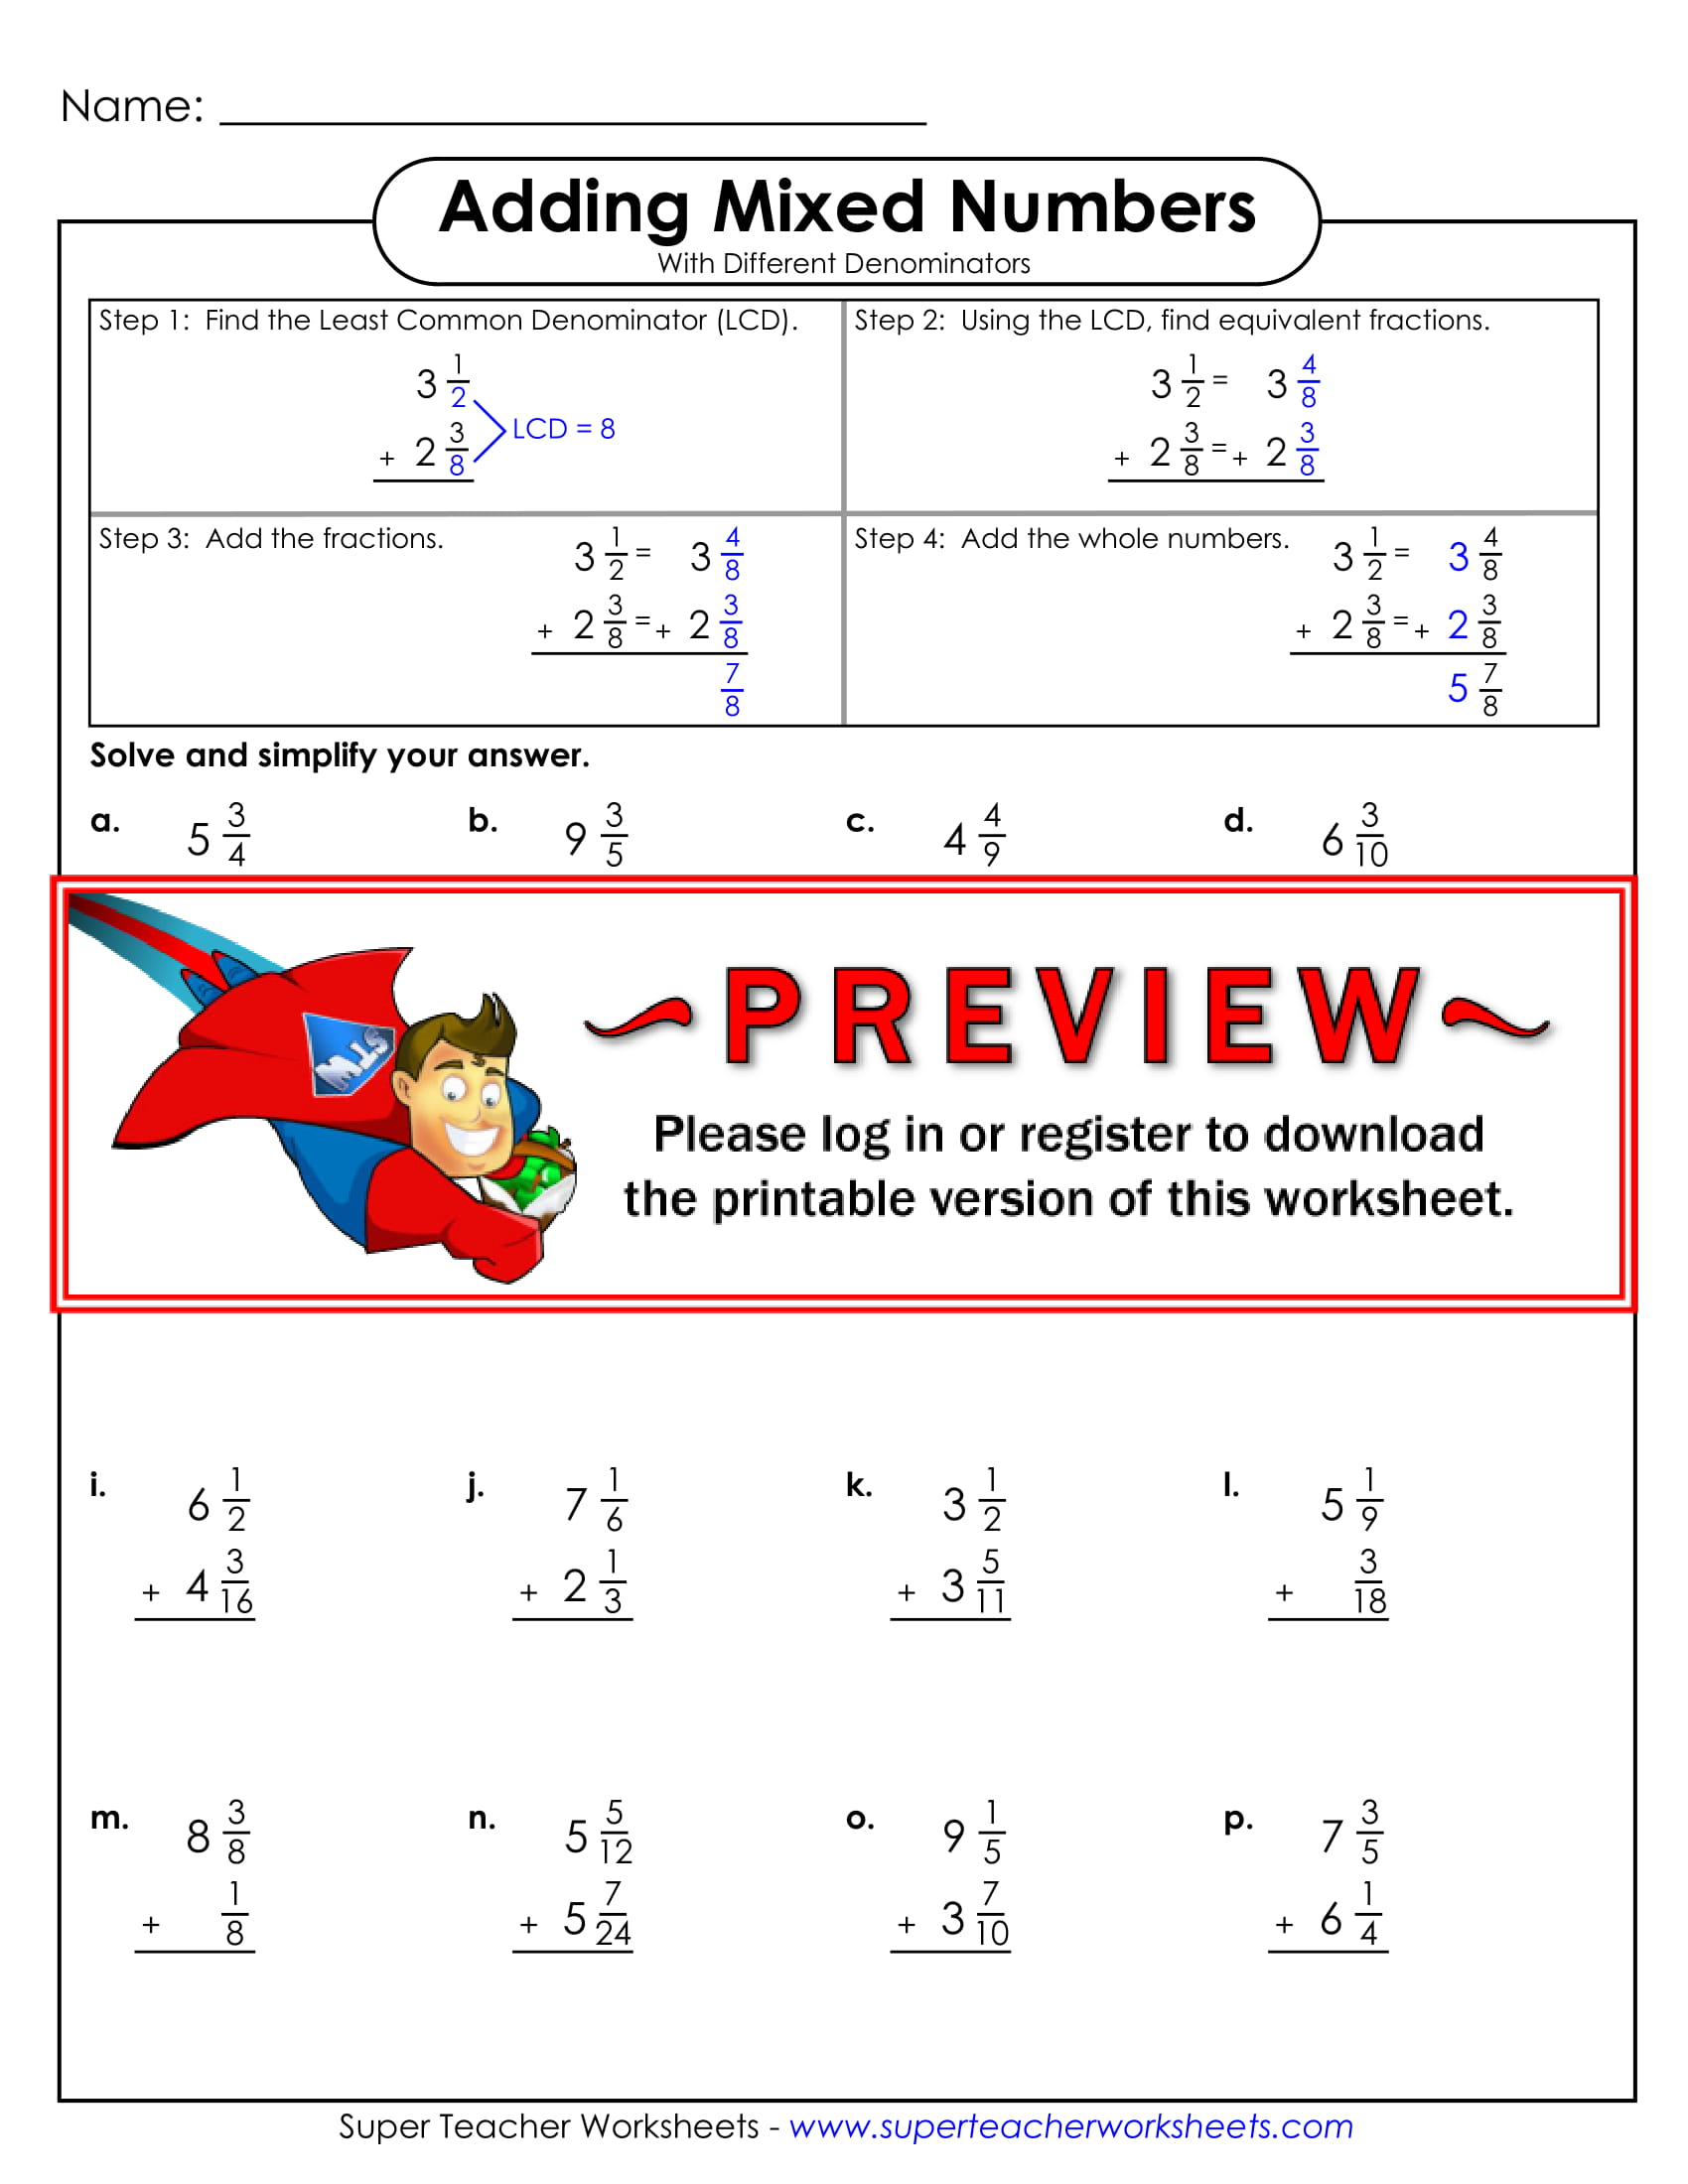 Subtracting Mixed Numbers Worksheet